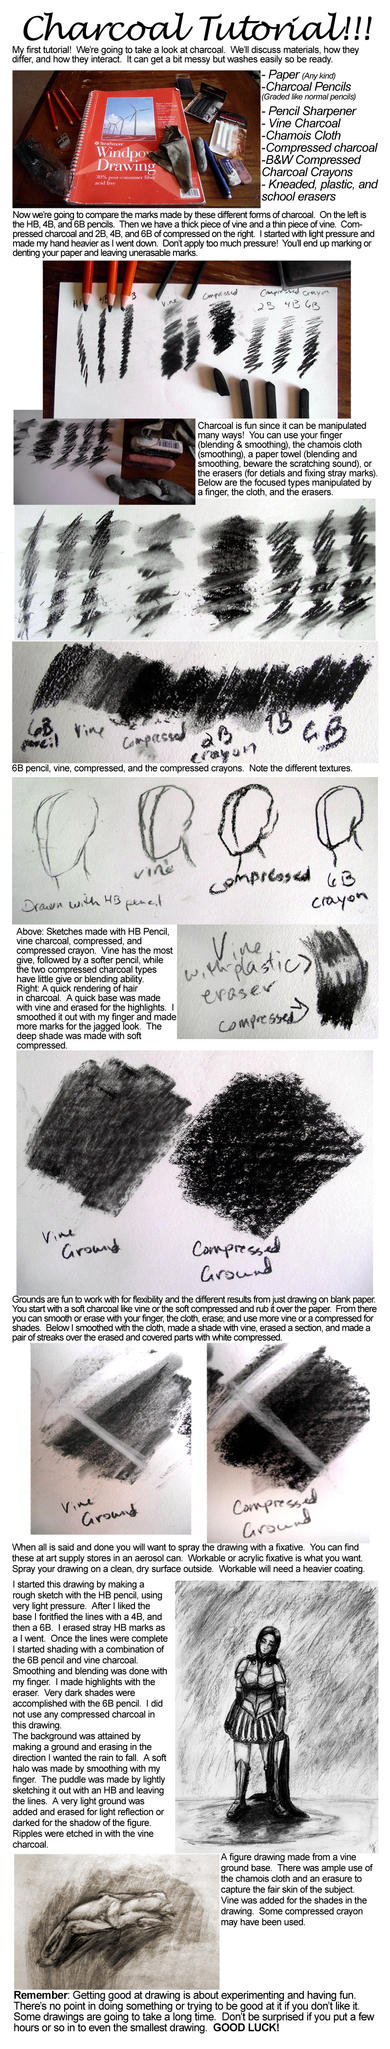 Charcoal Tutorial- My first one by a-ka-neArt